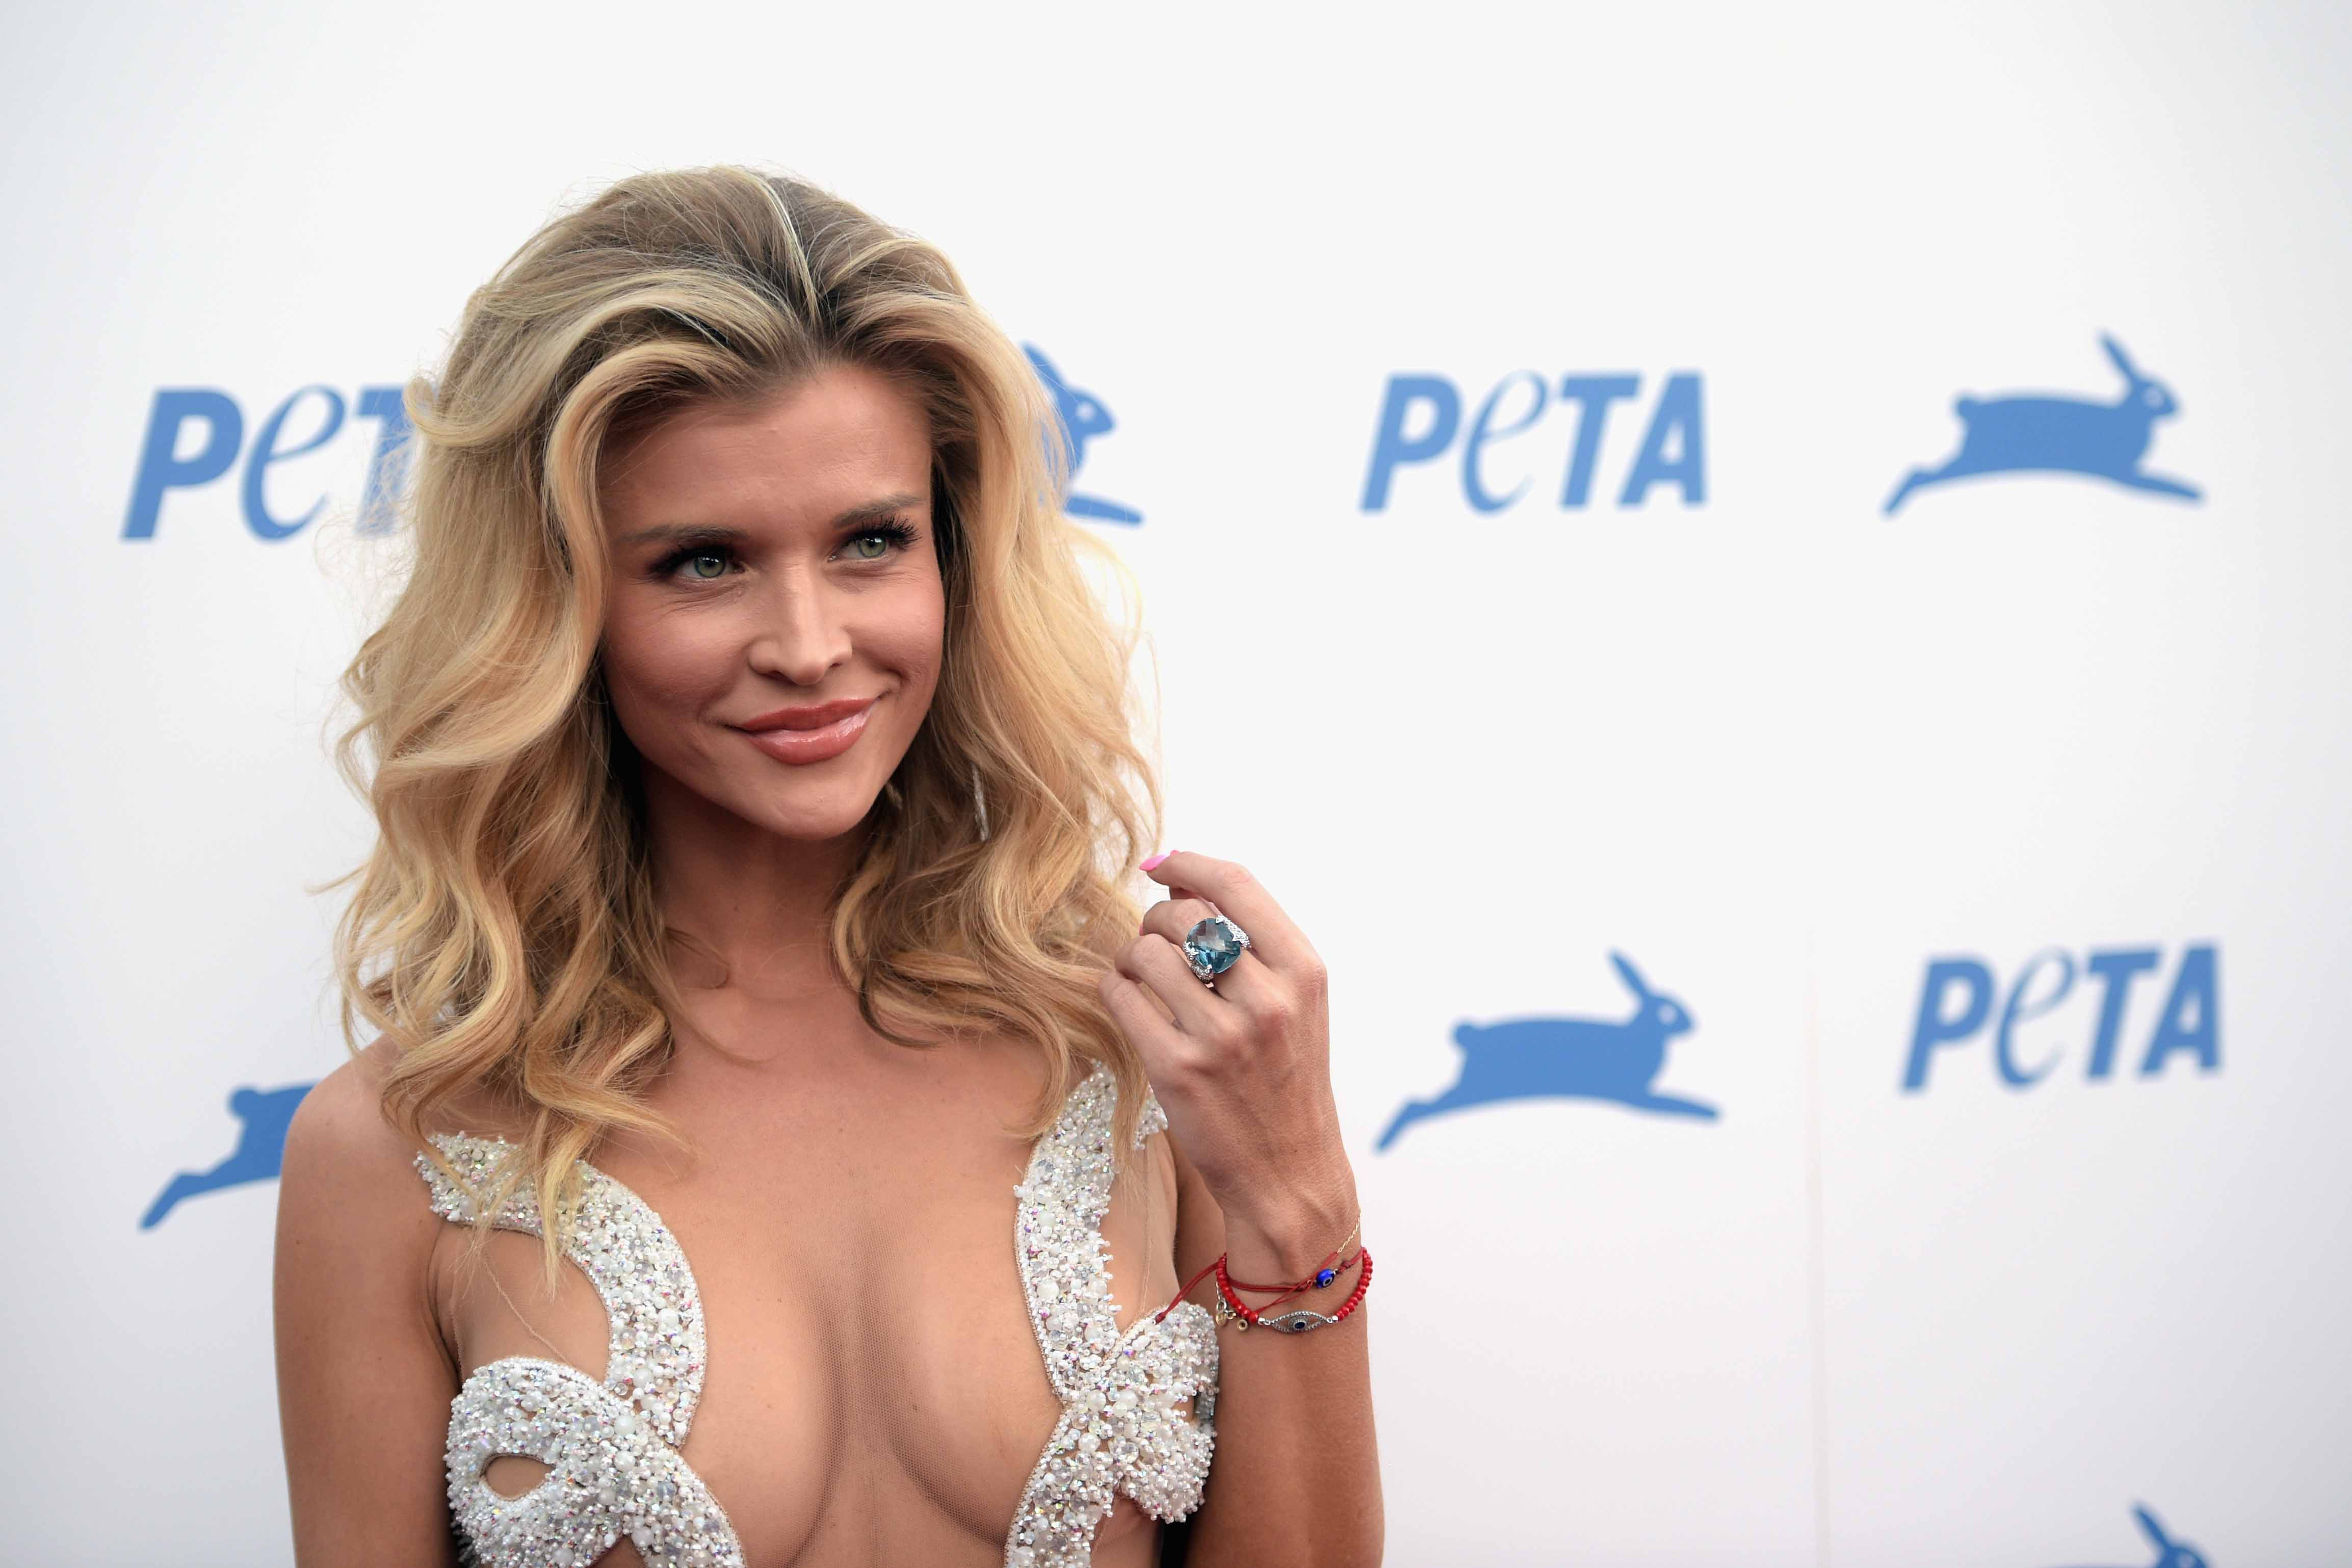 LOS ANGELES, CA - SEPTEMBER 30:  Model Joanna Krupa attends PETA's 35th Anniversary Party at Hollywood Palladium on September 30, 2015 in Los Angeles, California.  (Photo by Jason Kempin/Getty Images for PETA)